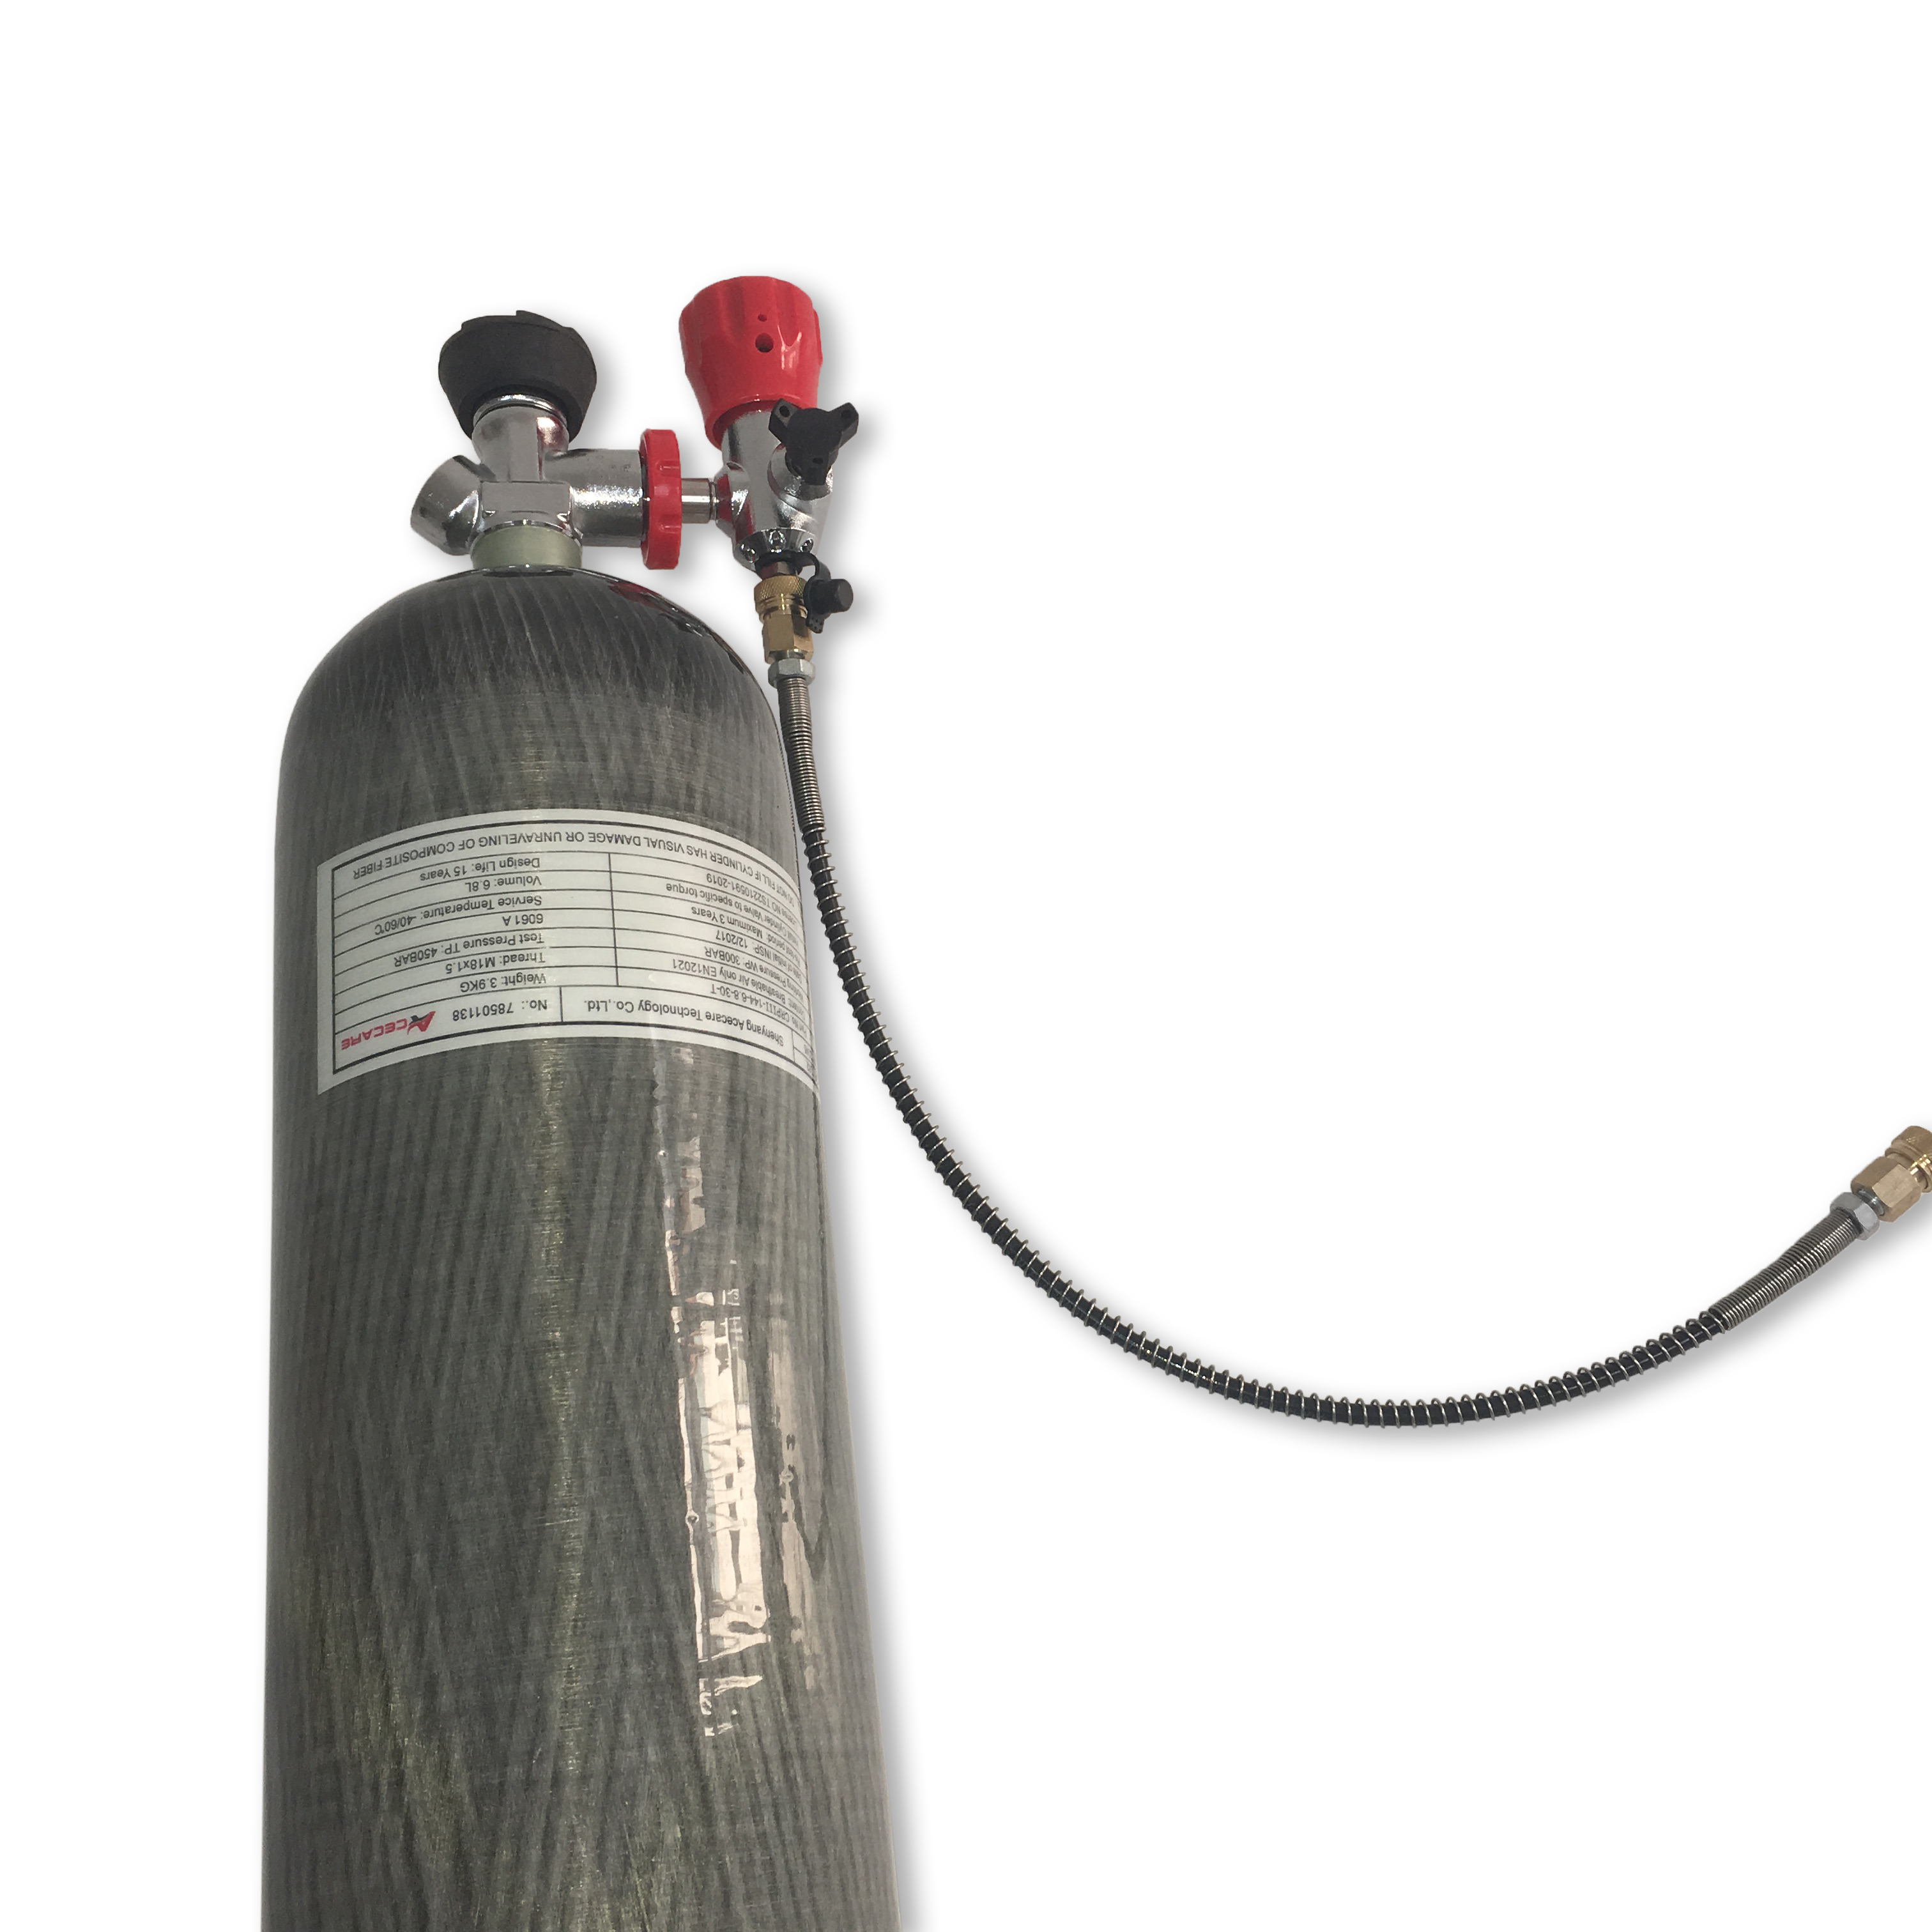 ACECARE 6.8L CE Compressed Air Scuba Condor Pcp Paintball Air Tank/carbon Tank Compressed Air 4500psi/300bar/30mpa AC168301